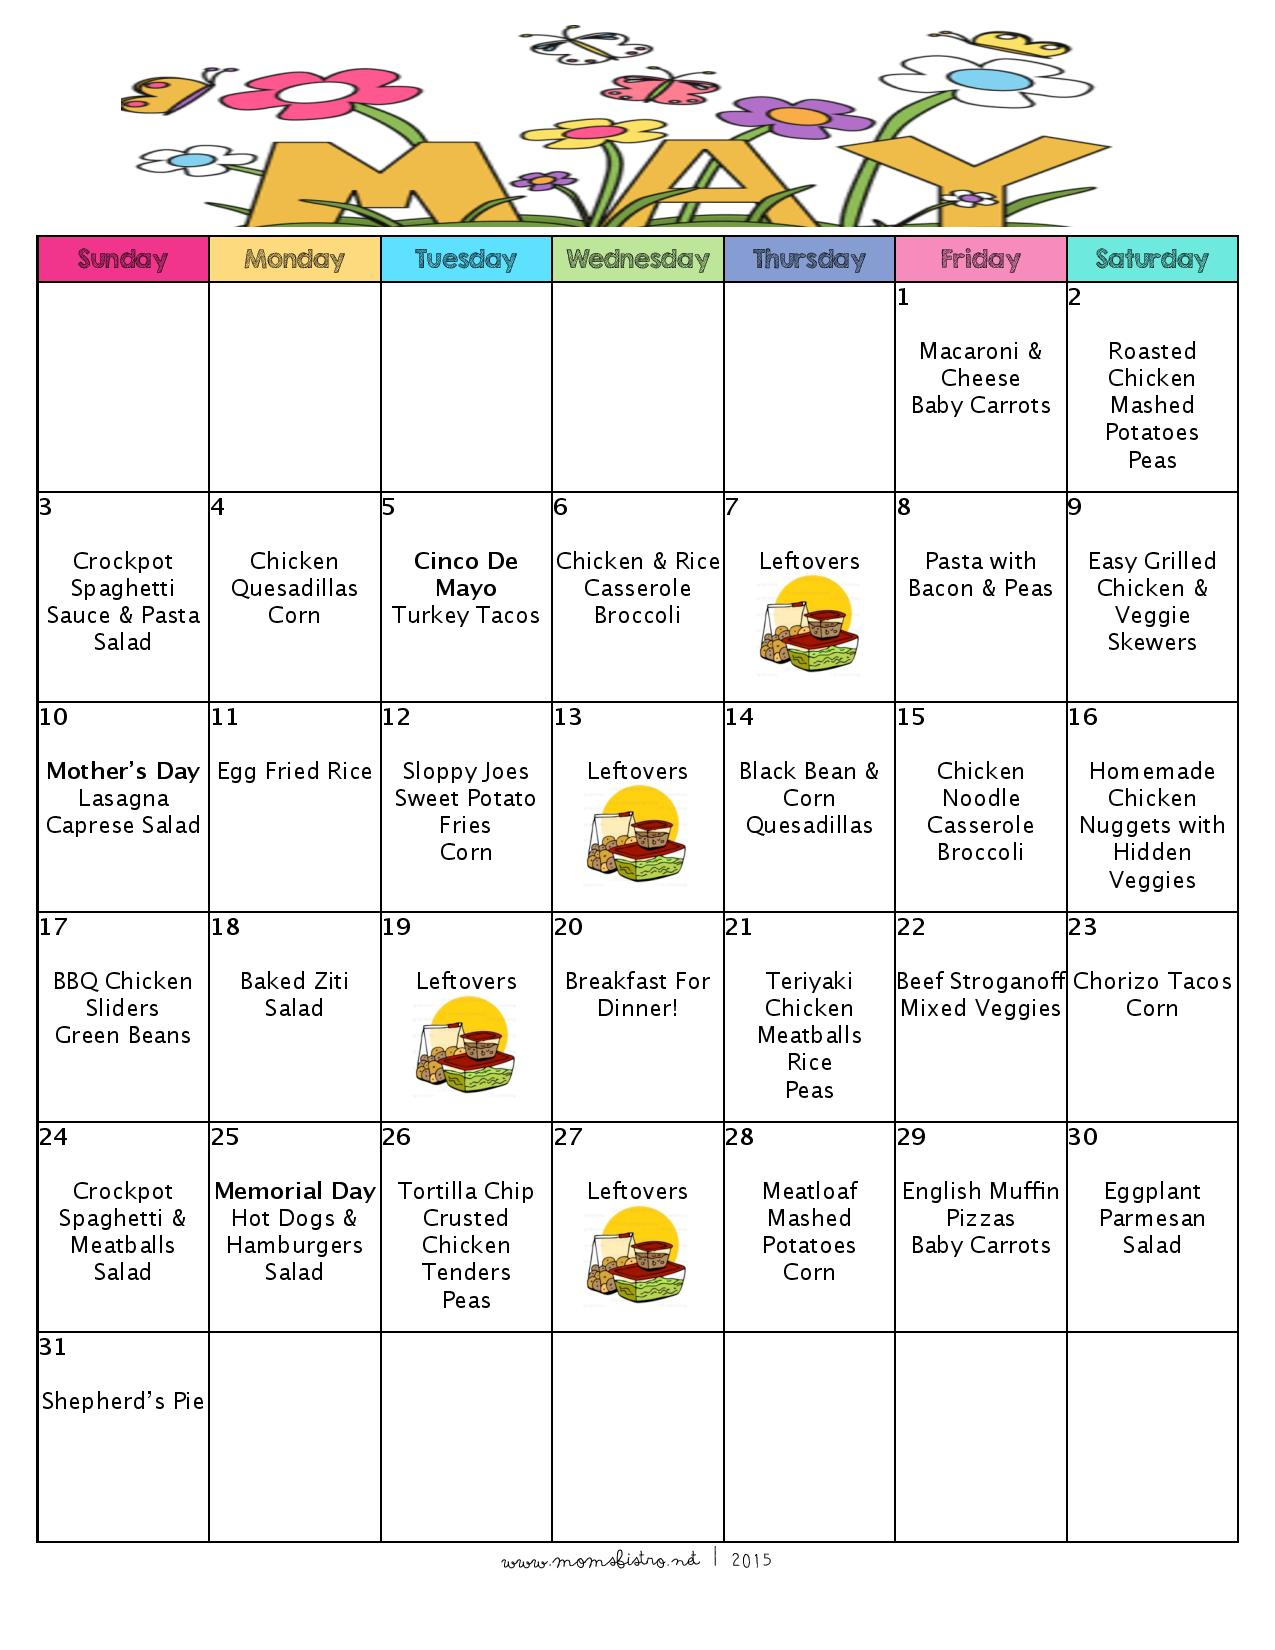 A Month Of Meal On A Budget | May 2015 Meal Plan | 31 Days of Dinners For $141 with 5 NEW Recipes!